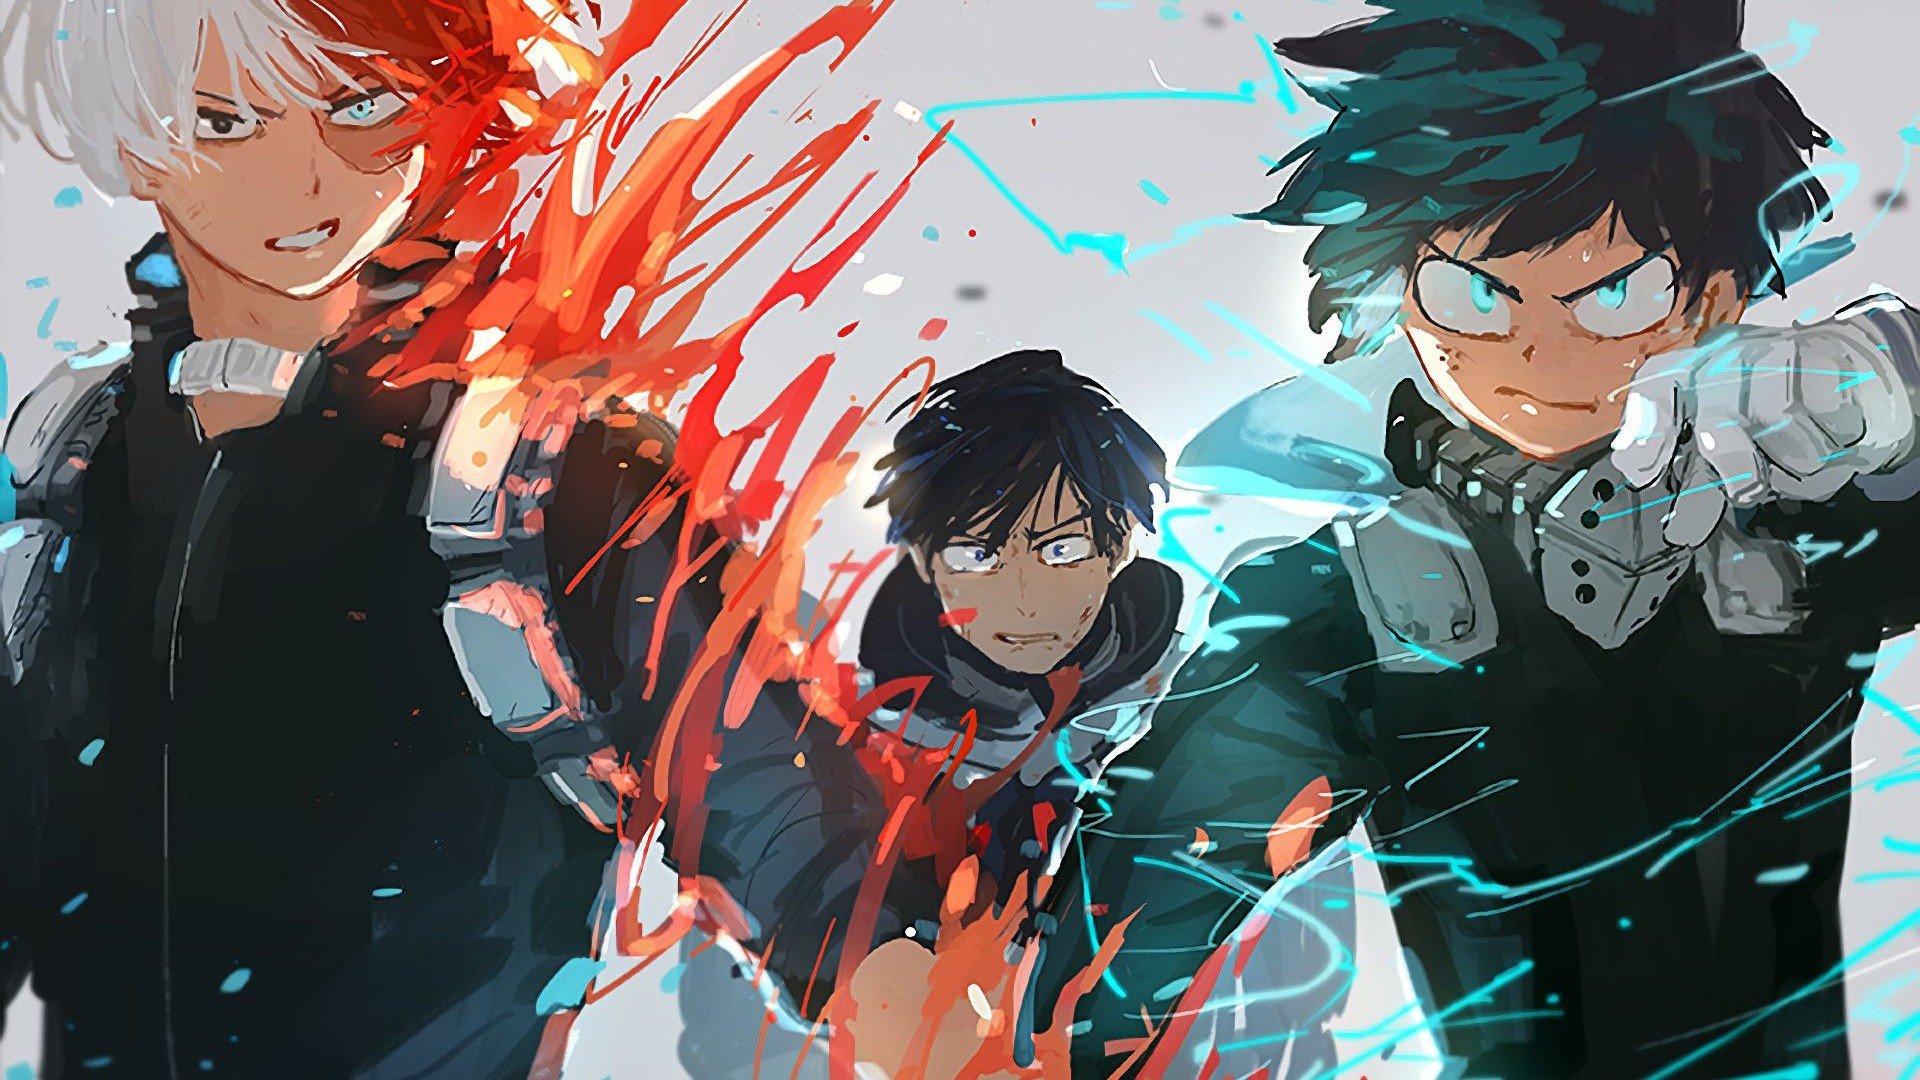 Anime live wallpaper dabi boku no hero academia is wallpaper app that contain all the best wallpaper of dabi. My Hero Academia HD Backgrounds | 2021 Live Wallpaper HD